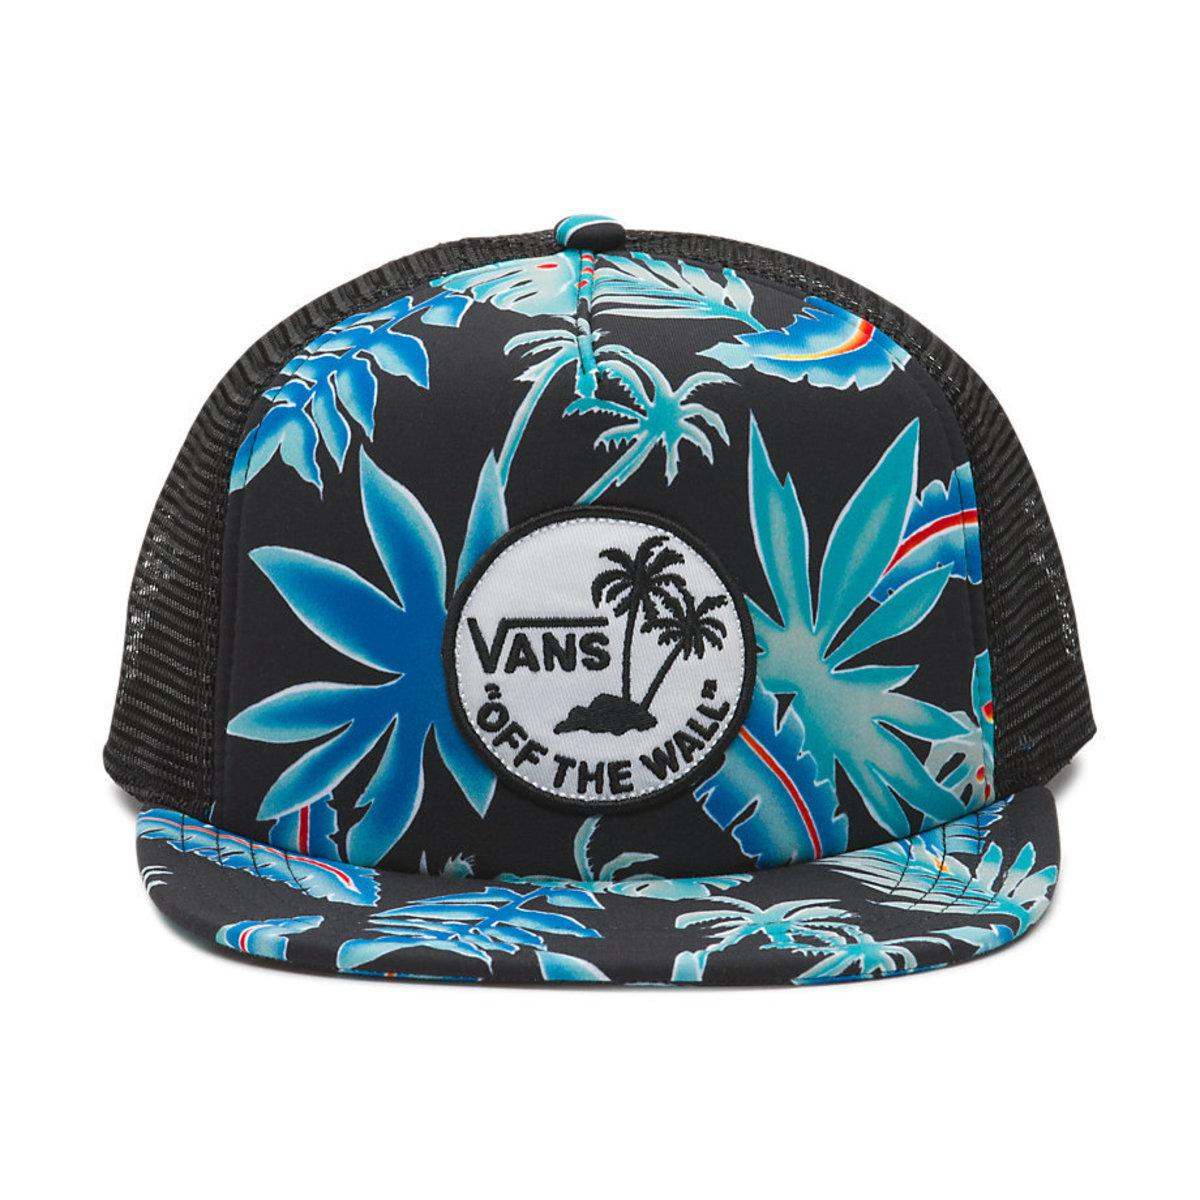 353152943c8 Lyst - Vans Surf Patch Trucker Hat for Men